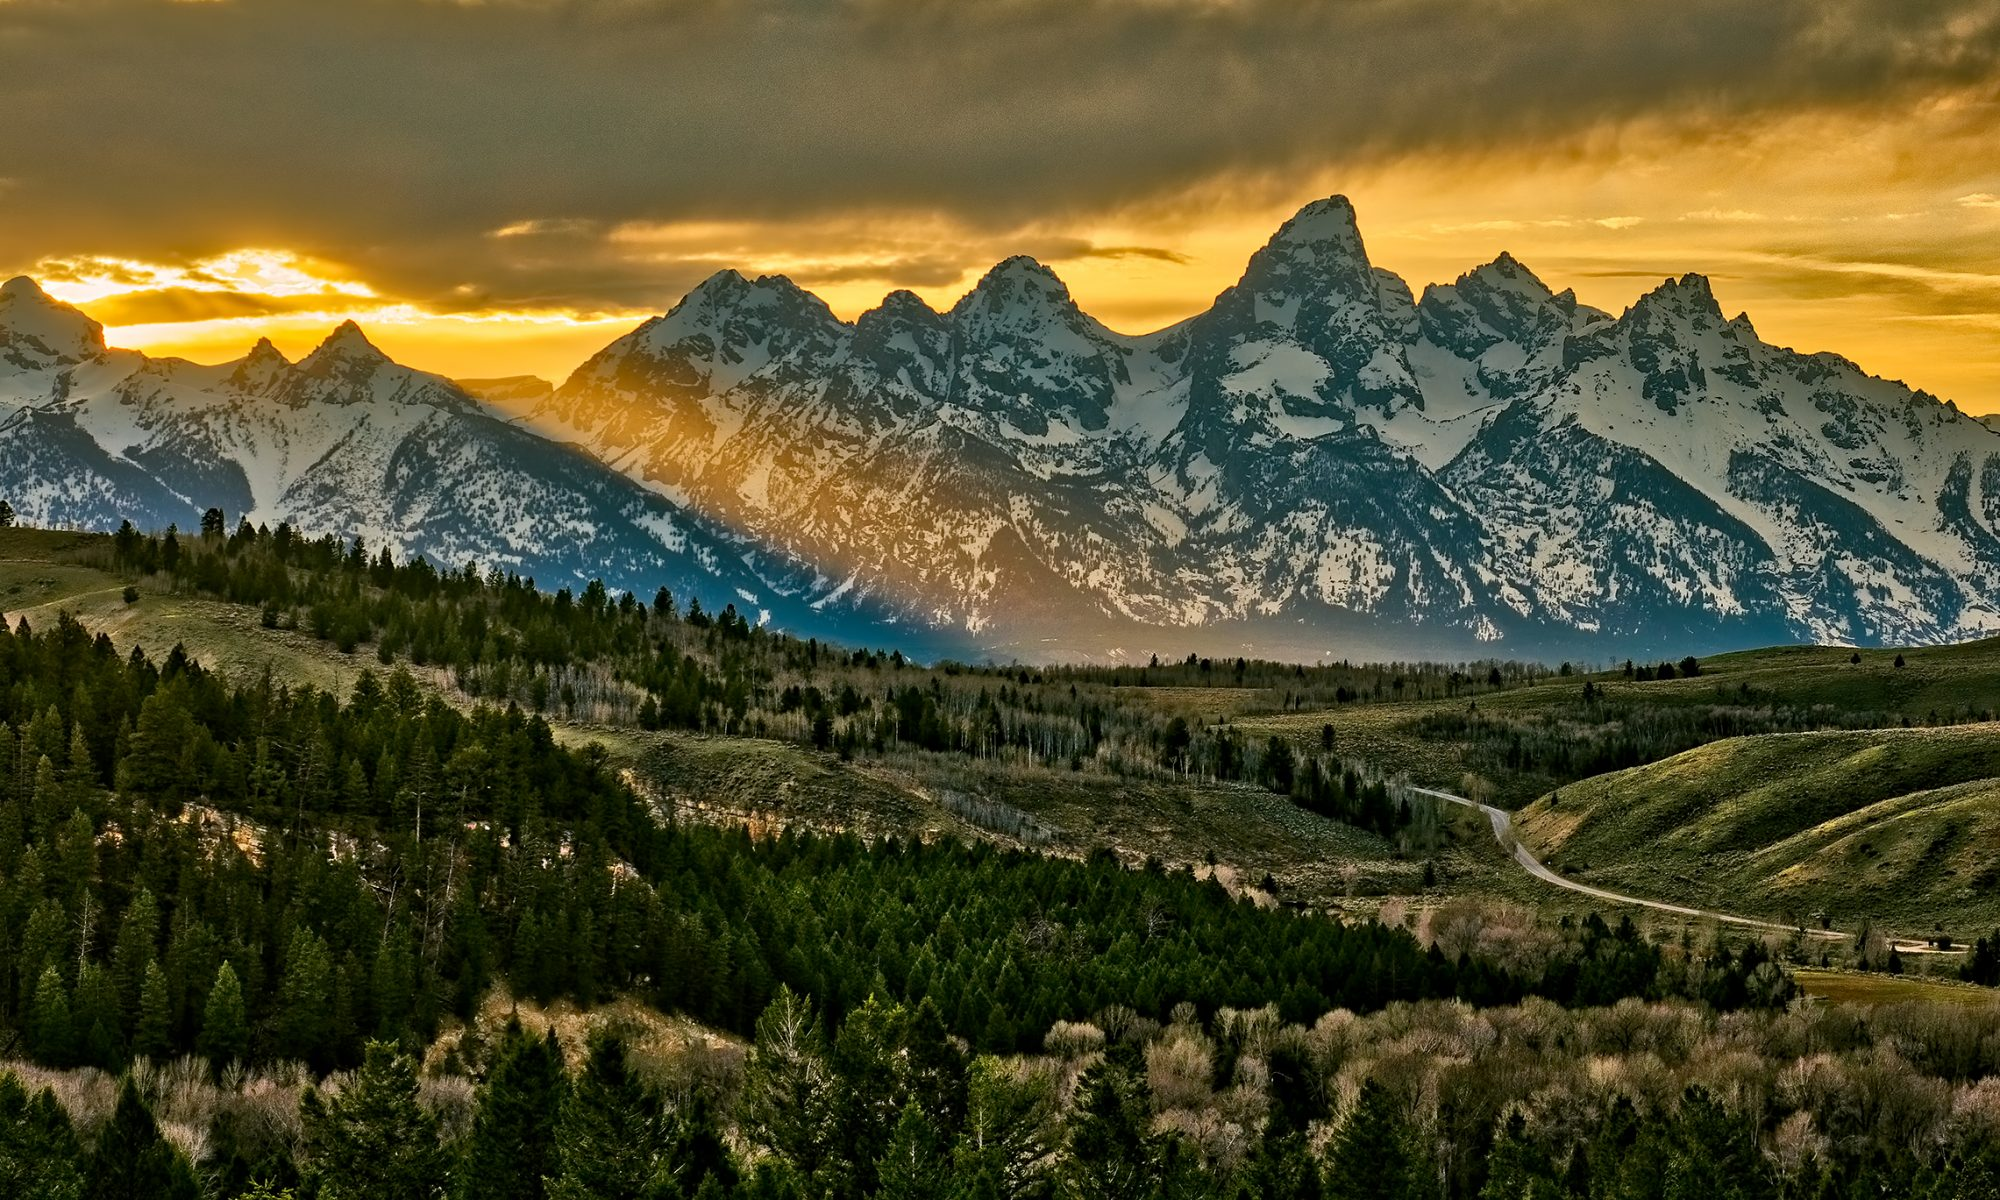 Teton Photography Club